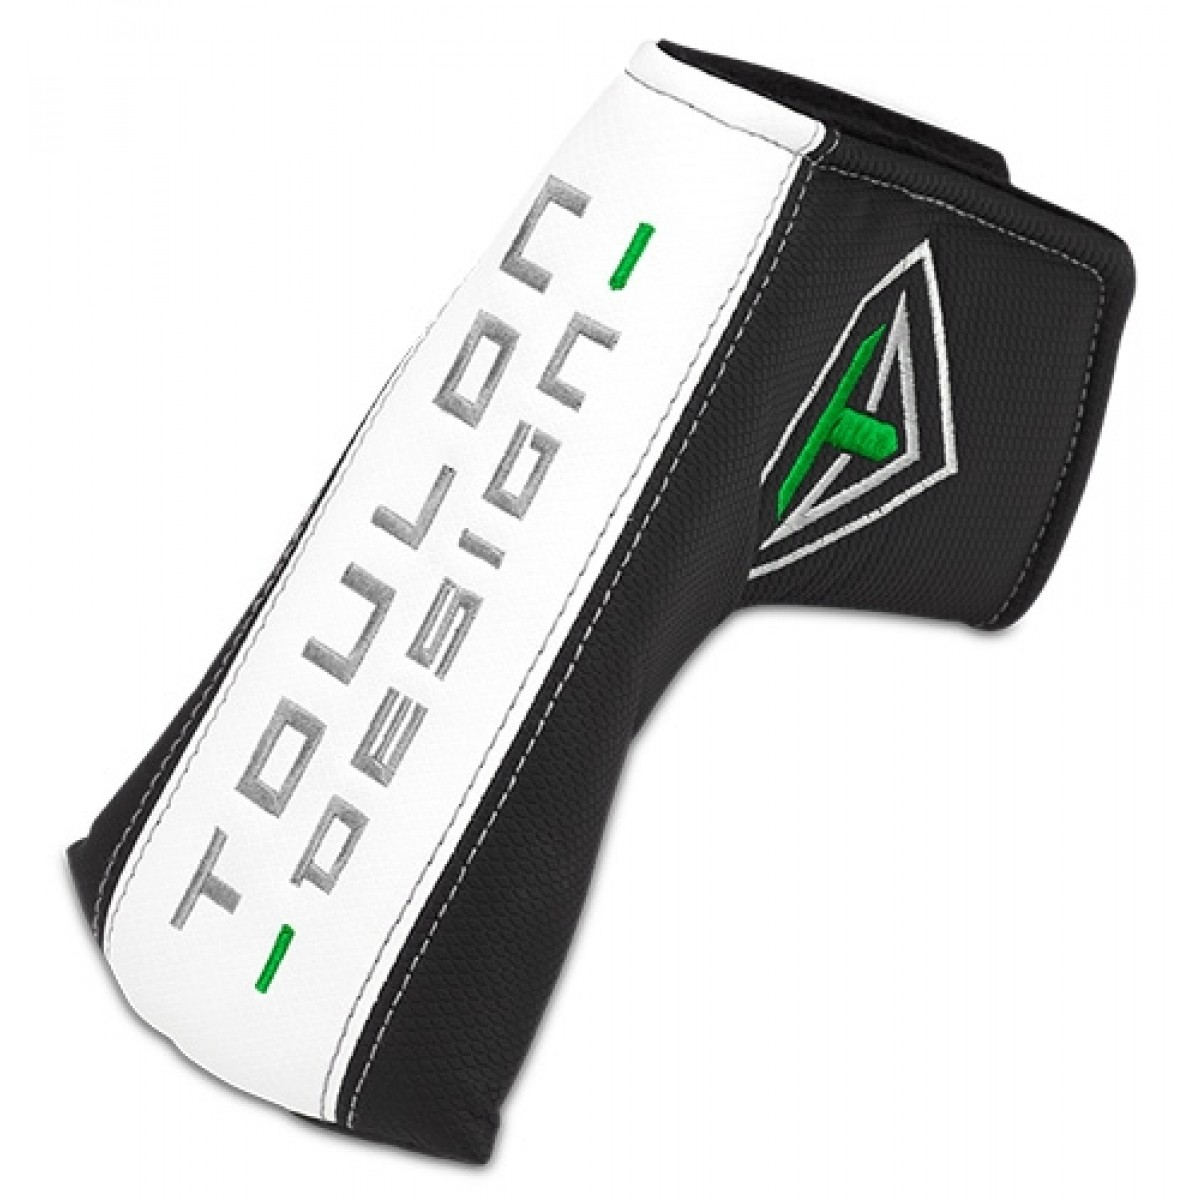 Odyssey 2019 Toulon Putters